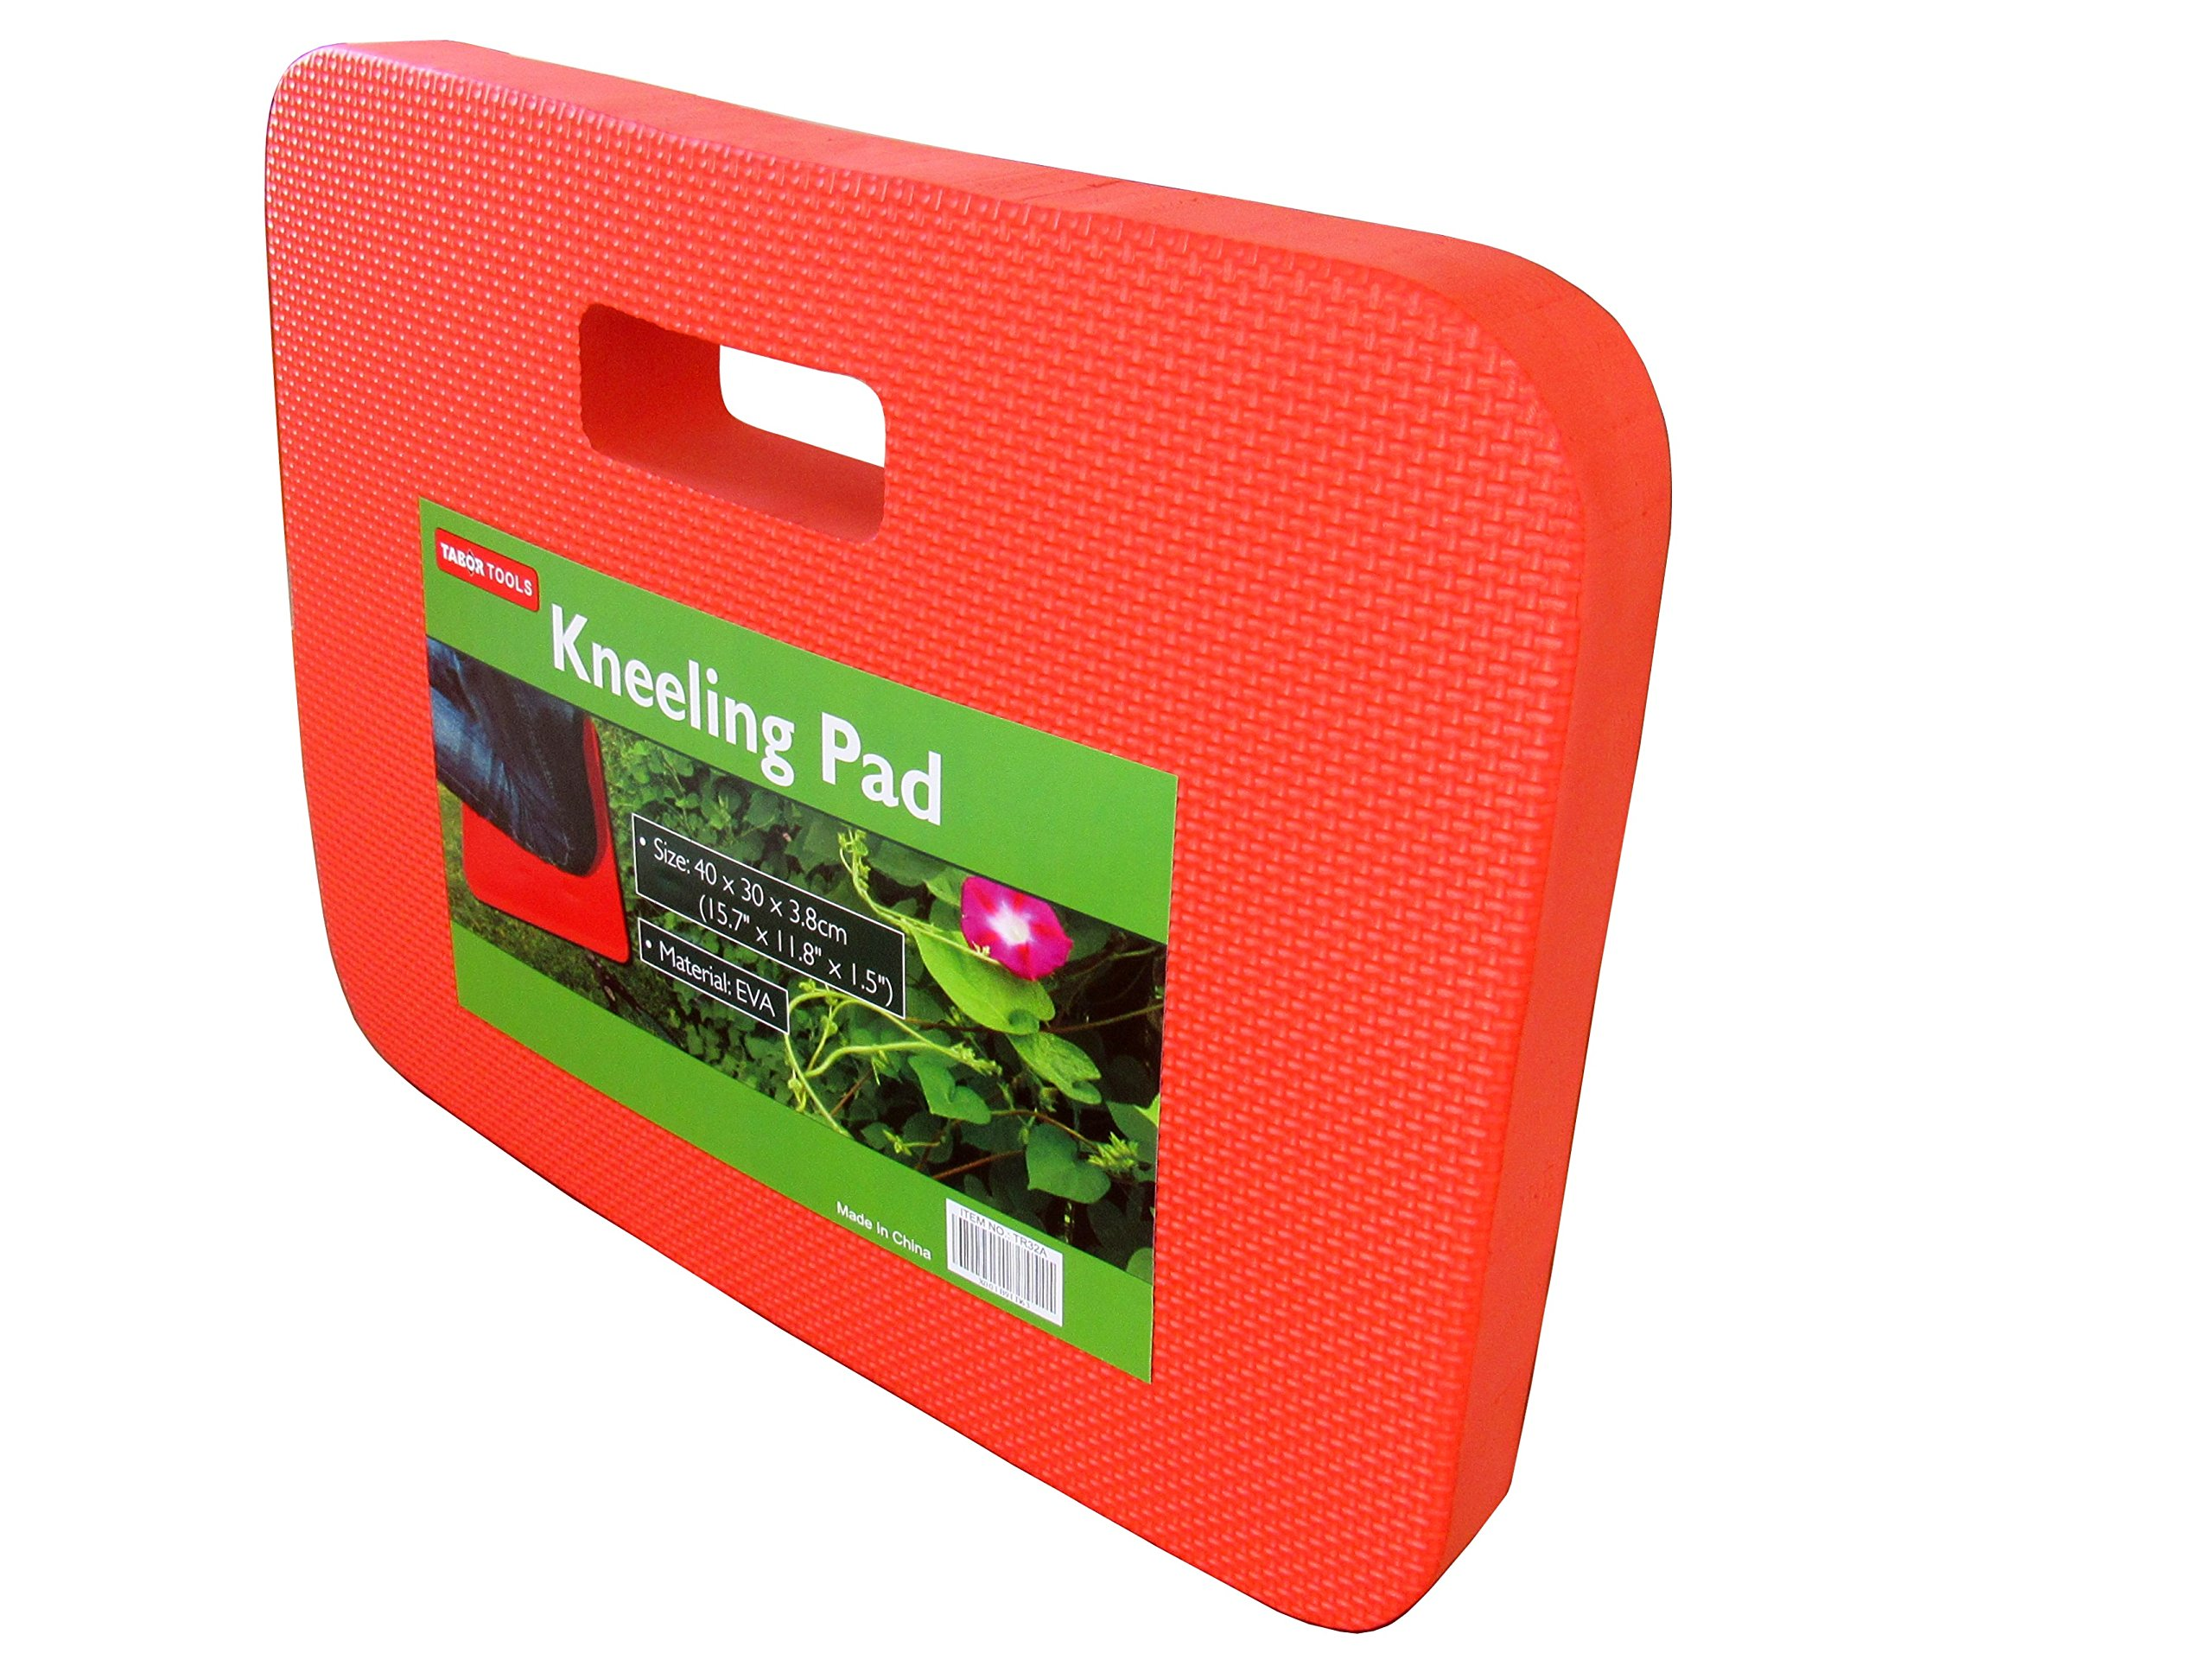 TABOR TOOLS TR32A Kneeling Pad, Thick Comfortable Protective Kneeler, Cushion for Gardening, Baby Bathing, Car Repair, House Chores, and Exercise. Waterproof Foam Pad for Sitting and Kneeling.